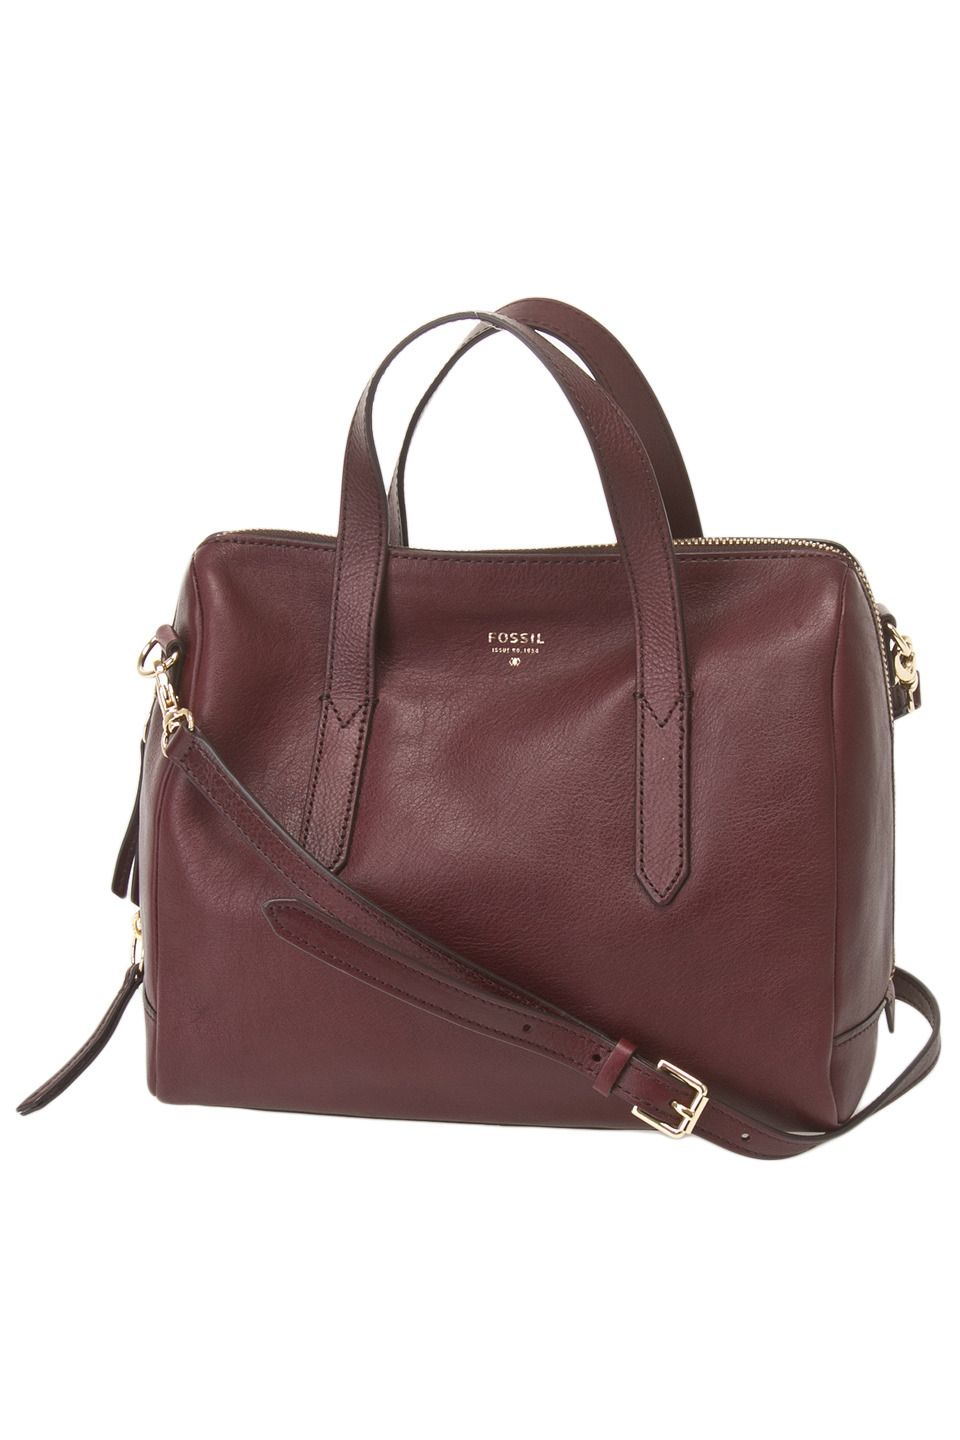 Fossil Sydney Satchel In Raisin I Wish This Weren T Discontinued